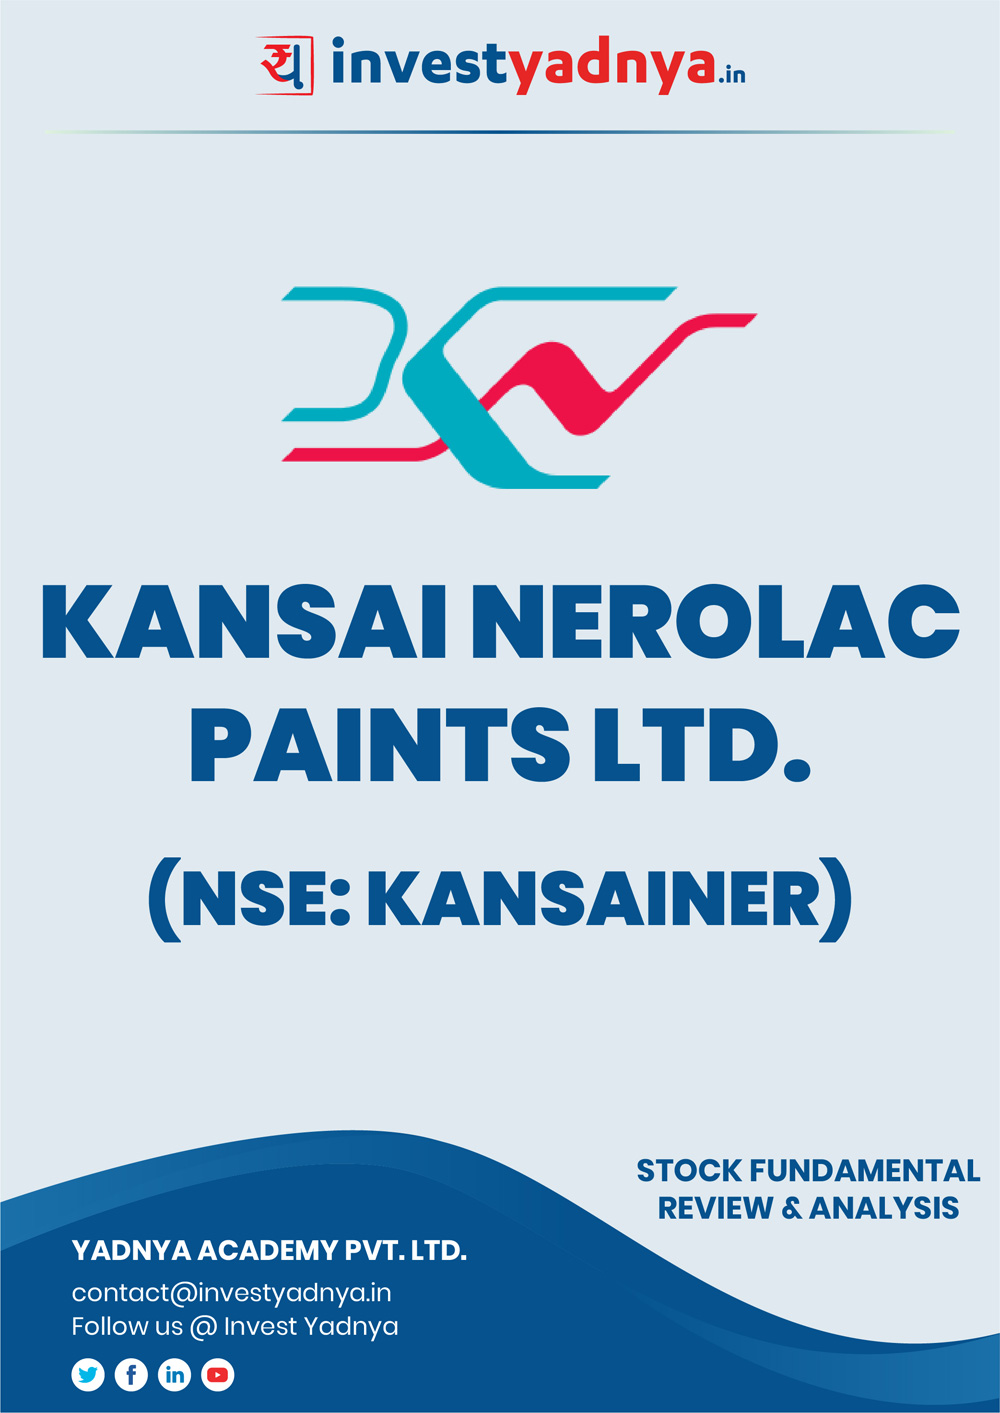 This e-book contains in-depth fundamental analysis of Kansai Nerolac Paints considering both Financial and Equity Research Parameters. It reviews the company, industry competitors, shareholding pattern, financials, and annual performance. ✔ Detailed Research ✔ Quality Reports